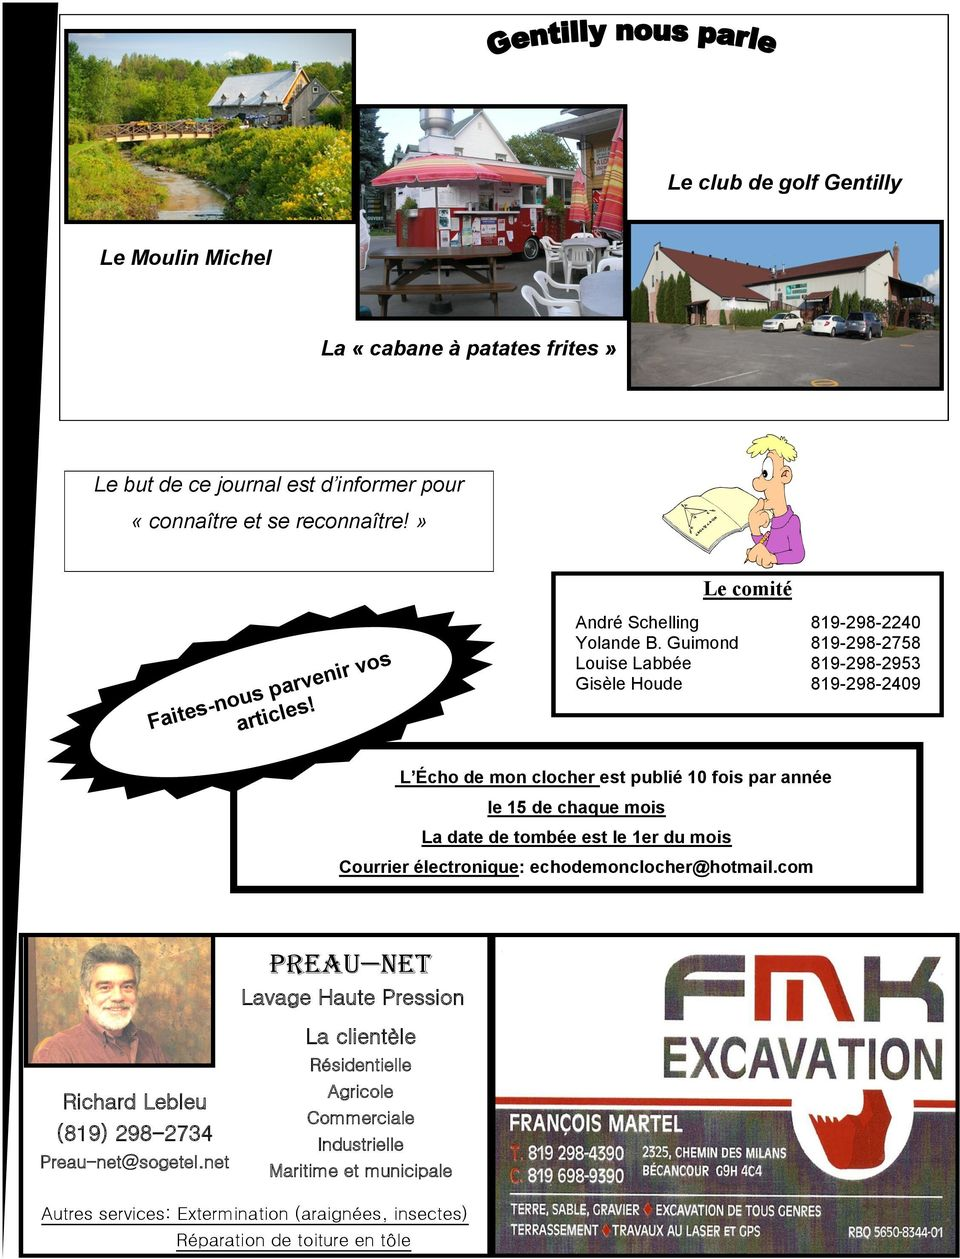 Guimond 819-298-2758 Louise Labbée 819-298-2953 Gisèle Houde 819-298-2409 Courrier électronique: echodemonclocher@hotmail.